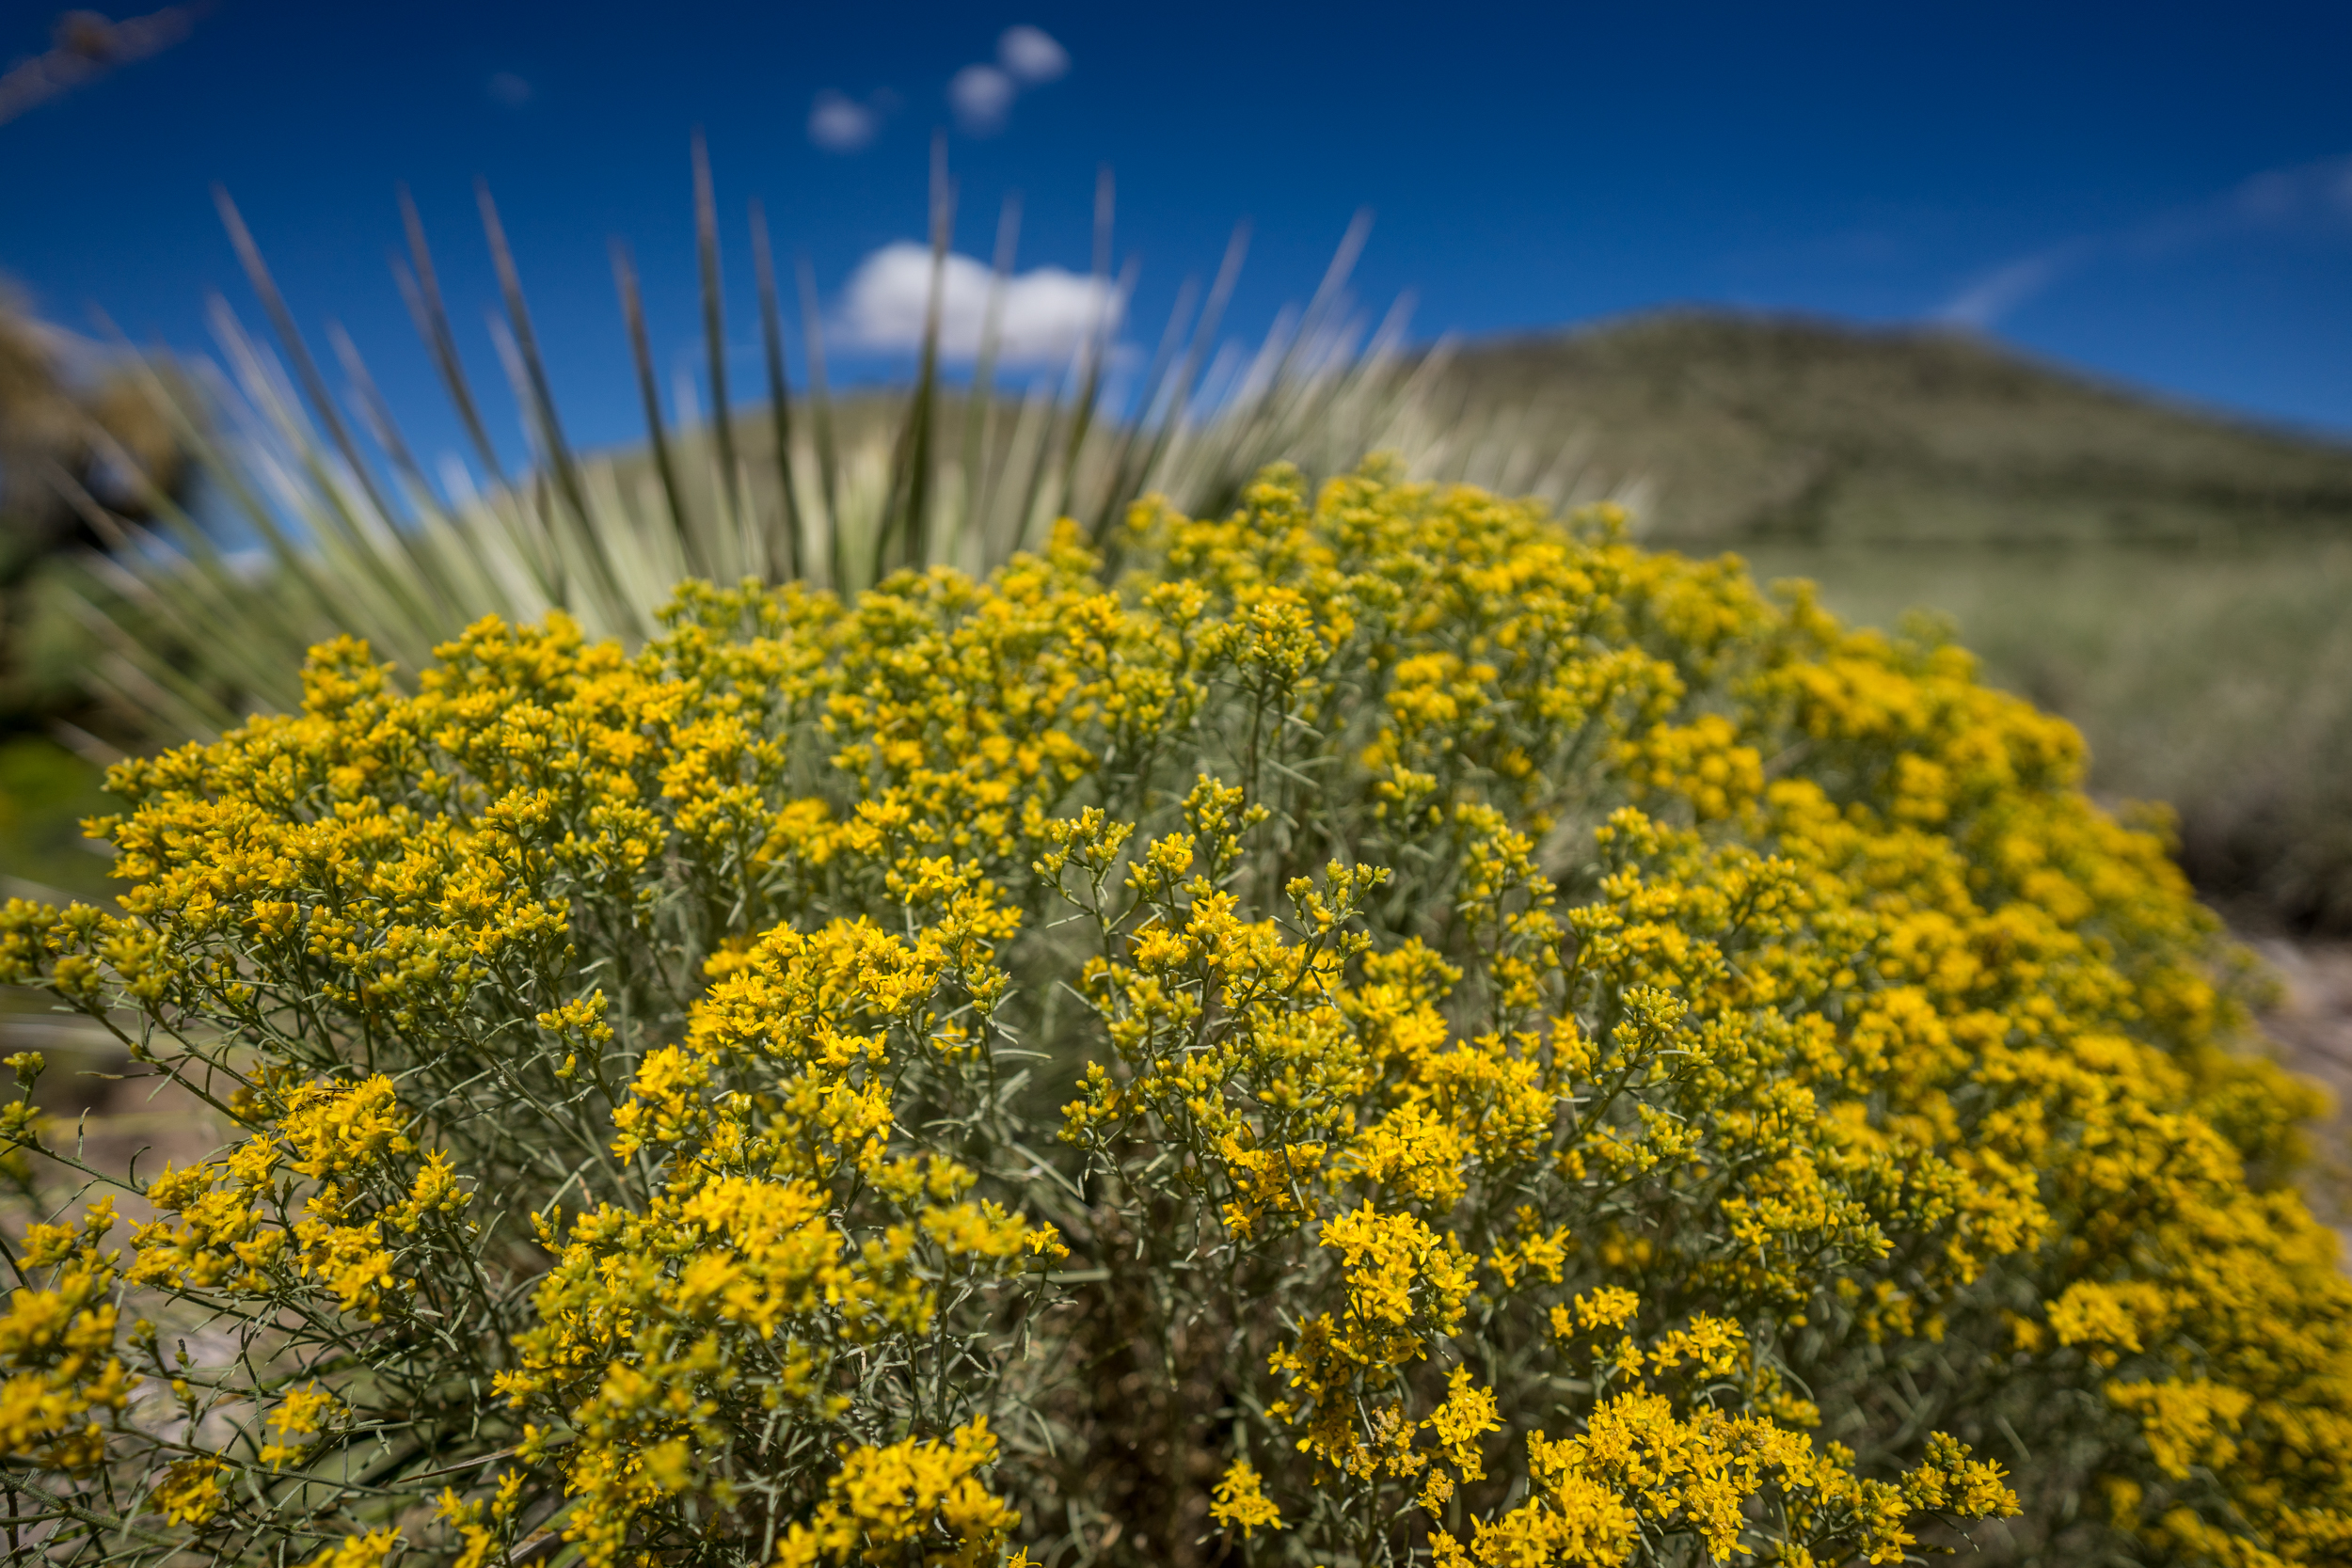 Flowering rabbitbrush